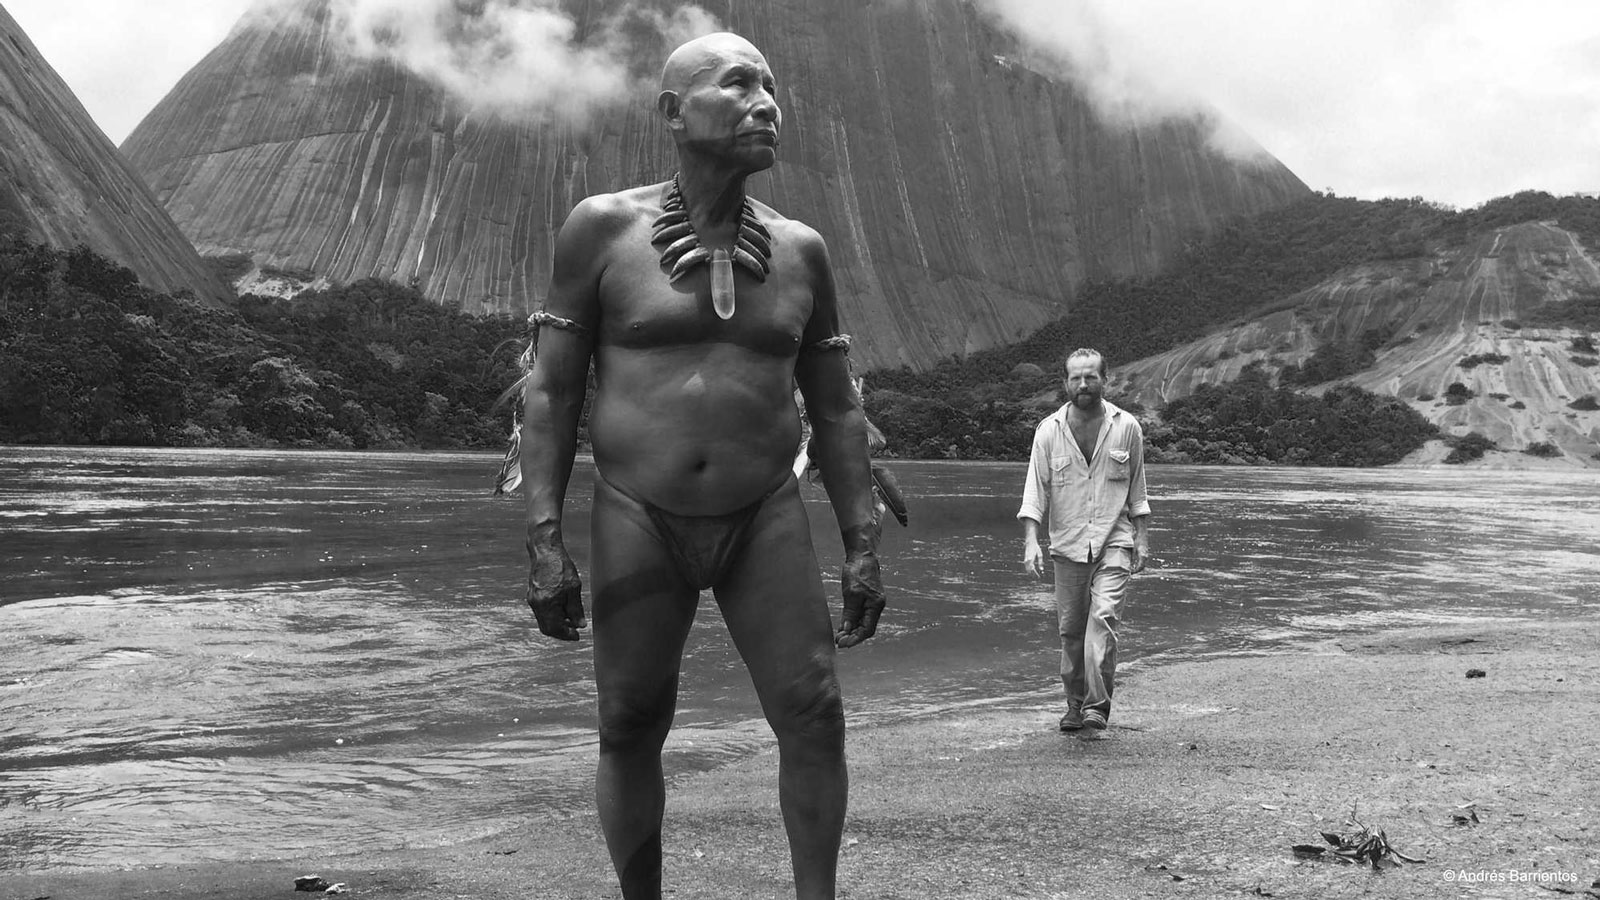 Antonio Bolivar as Karamakate and Brionne Davis as Richard Evans Schultes in Ciro Guerra's Embrace of the Serpent, 2015